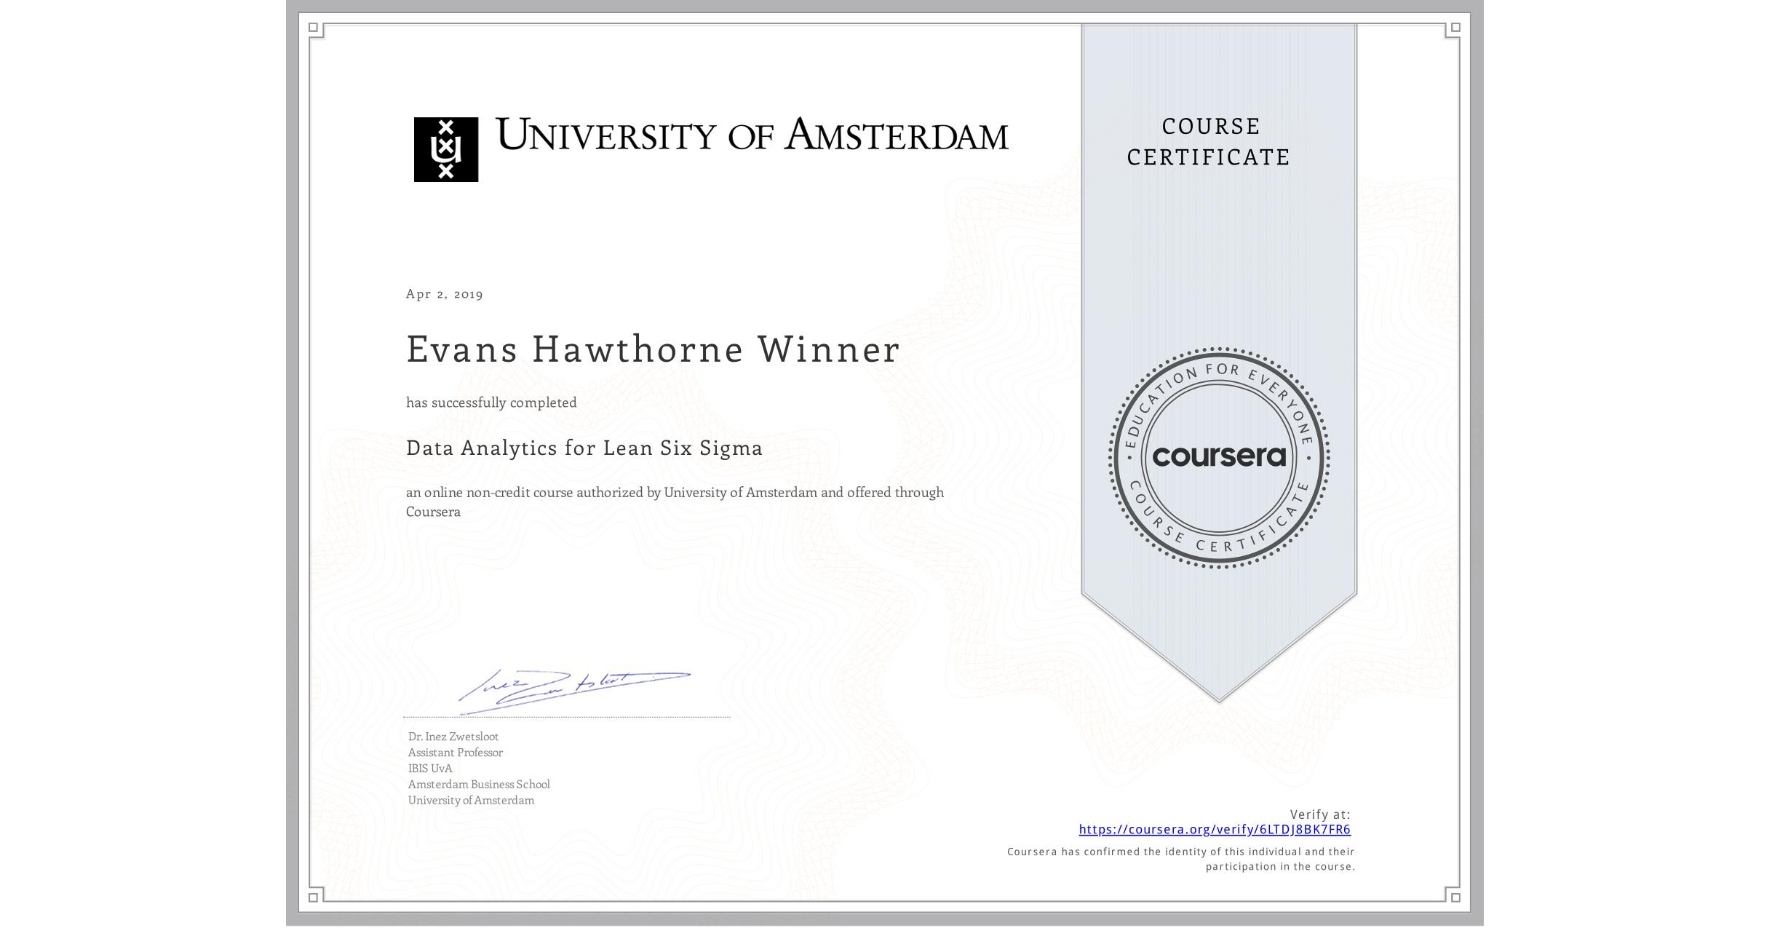 View certificate for Evans Hawthorne Winner, Data Analytics for Lean Six Sigma, an online non-credit course authorized by University of Amsterdam and offered through Coursera